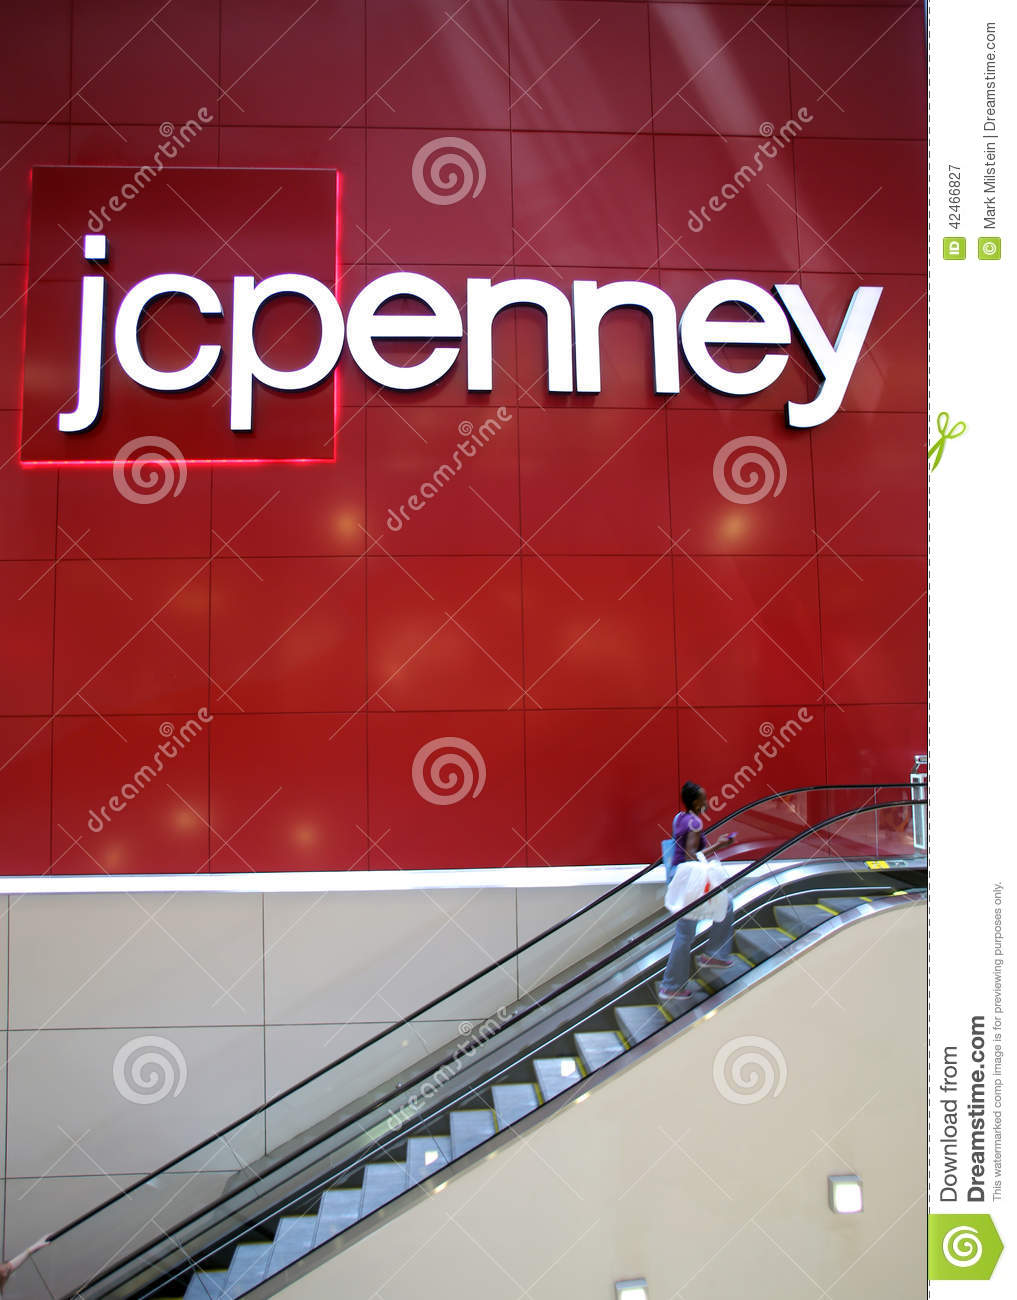 JC Penny Department Store